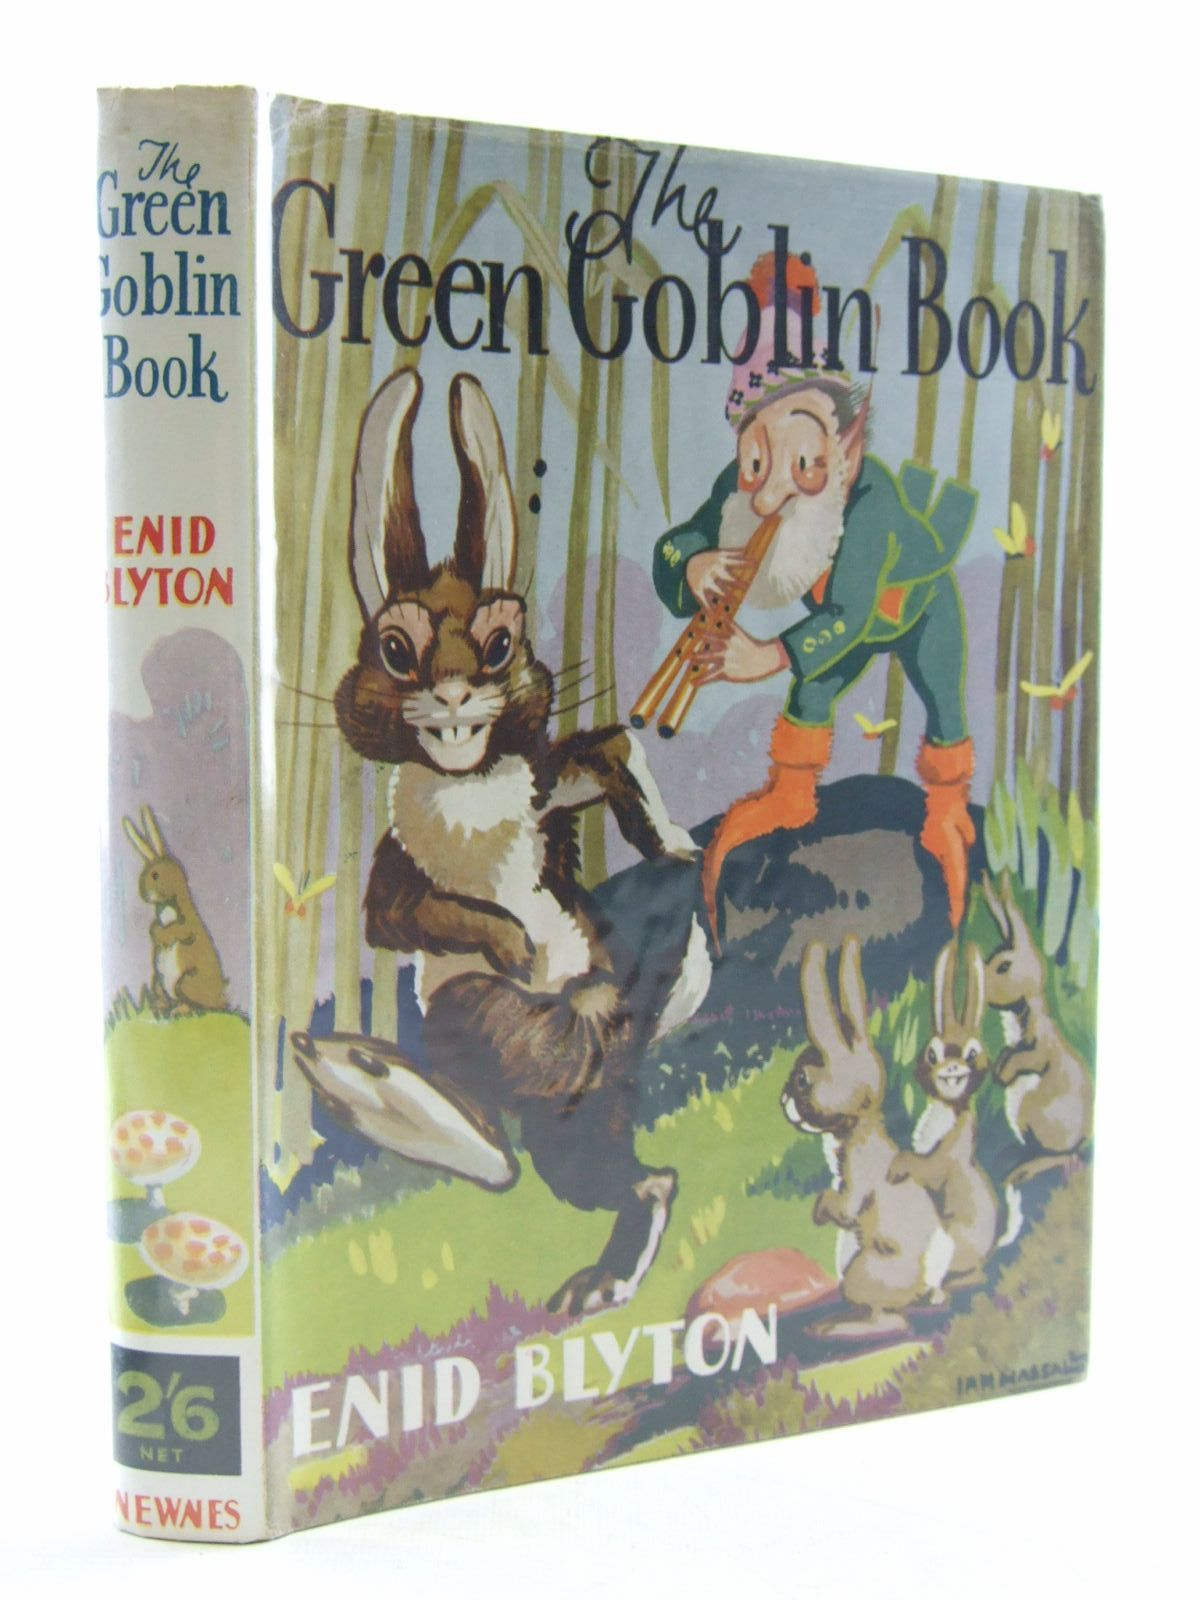 Cover of THE GREEN GOBLIN BOOK by Enid Blyton